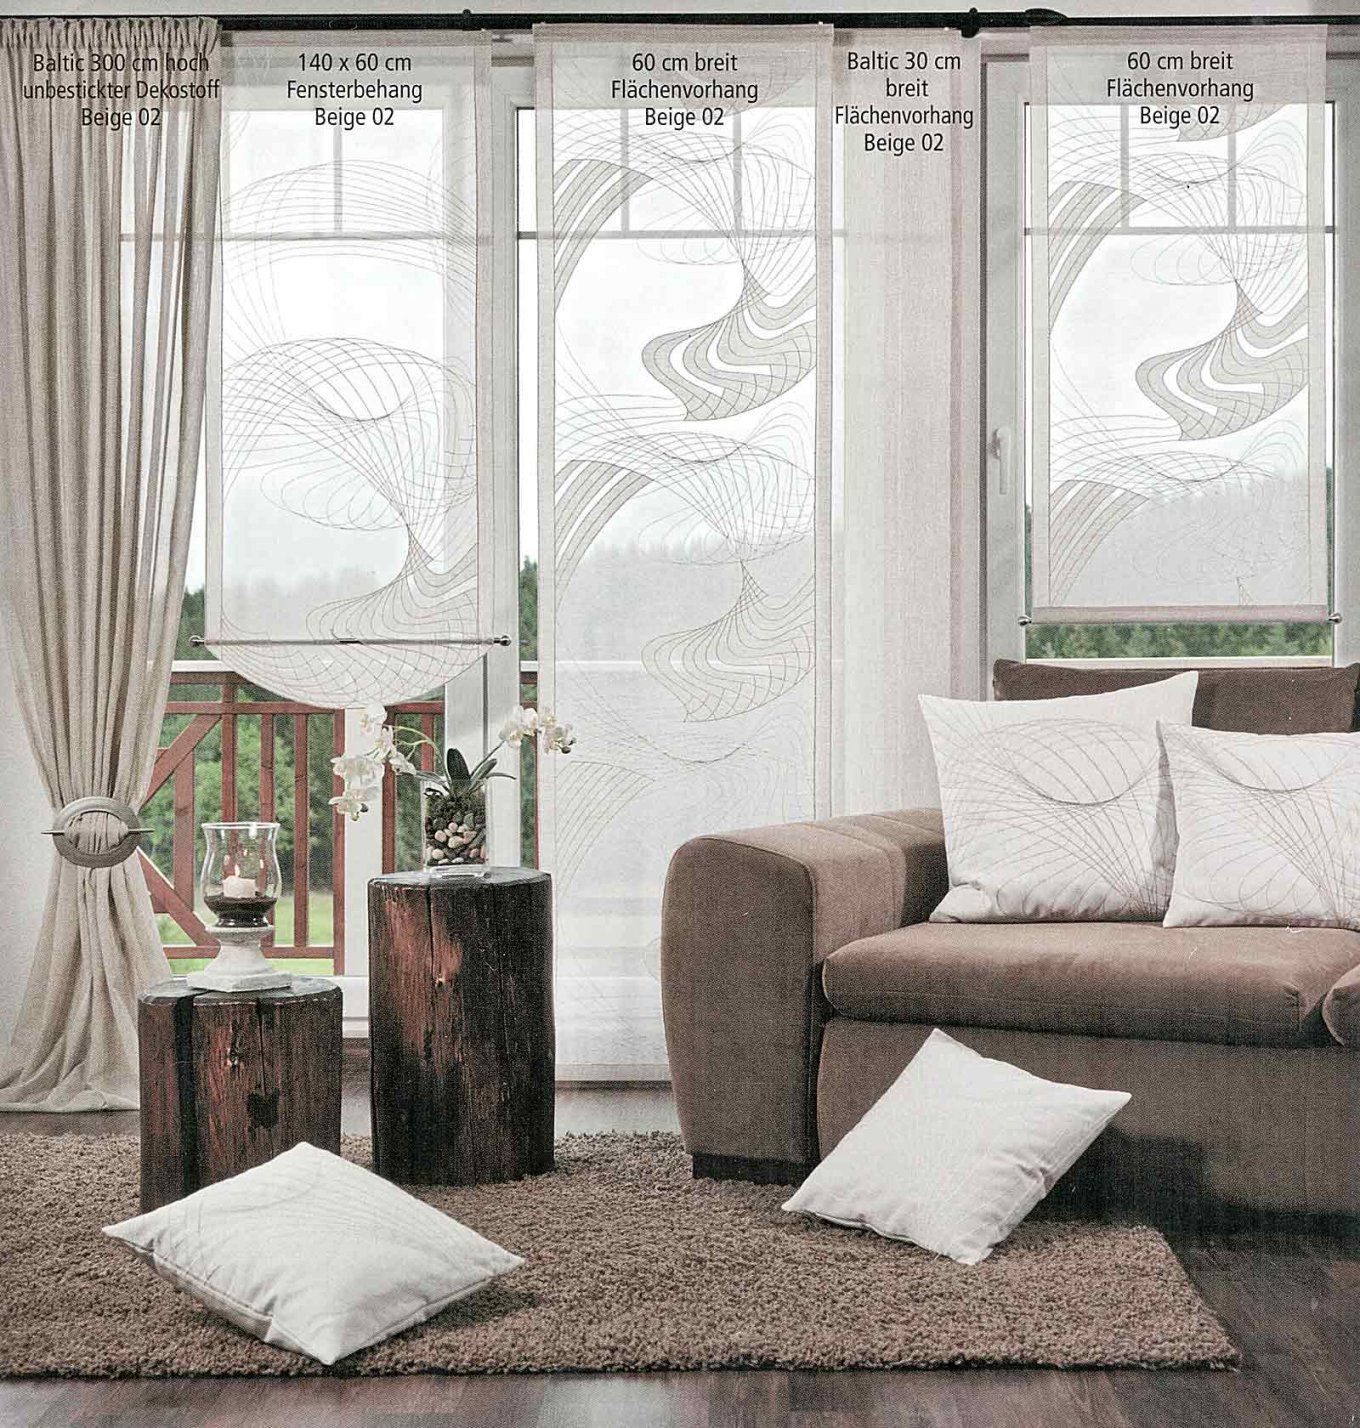 gardinen plauener spitze meterware haus design ideen. Black Bedroom Furniture Sets. Home Design Ideas